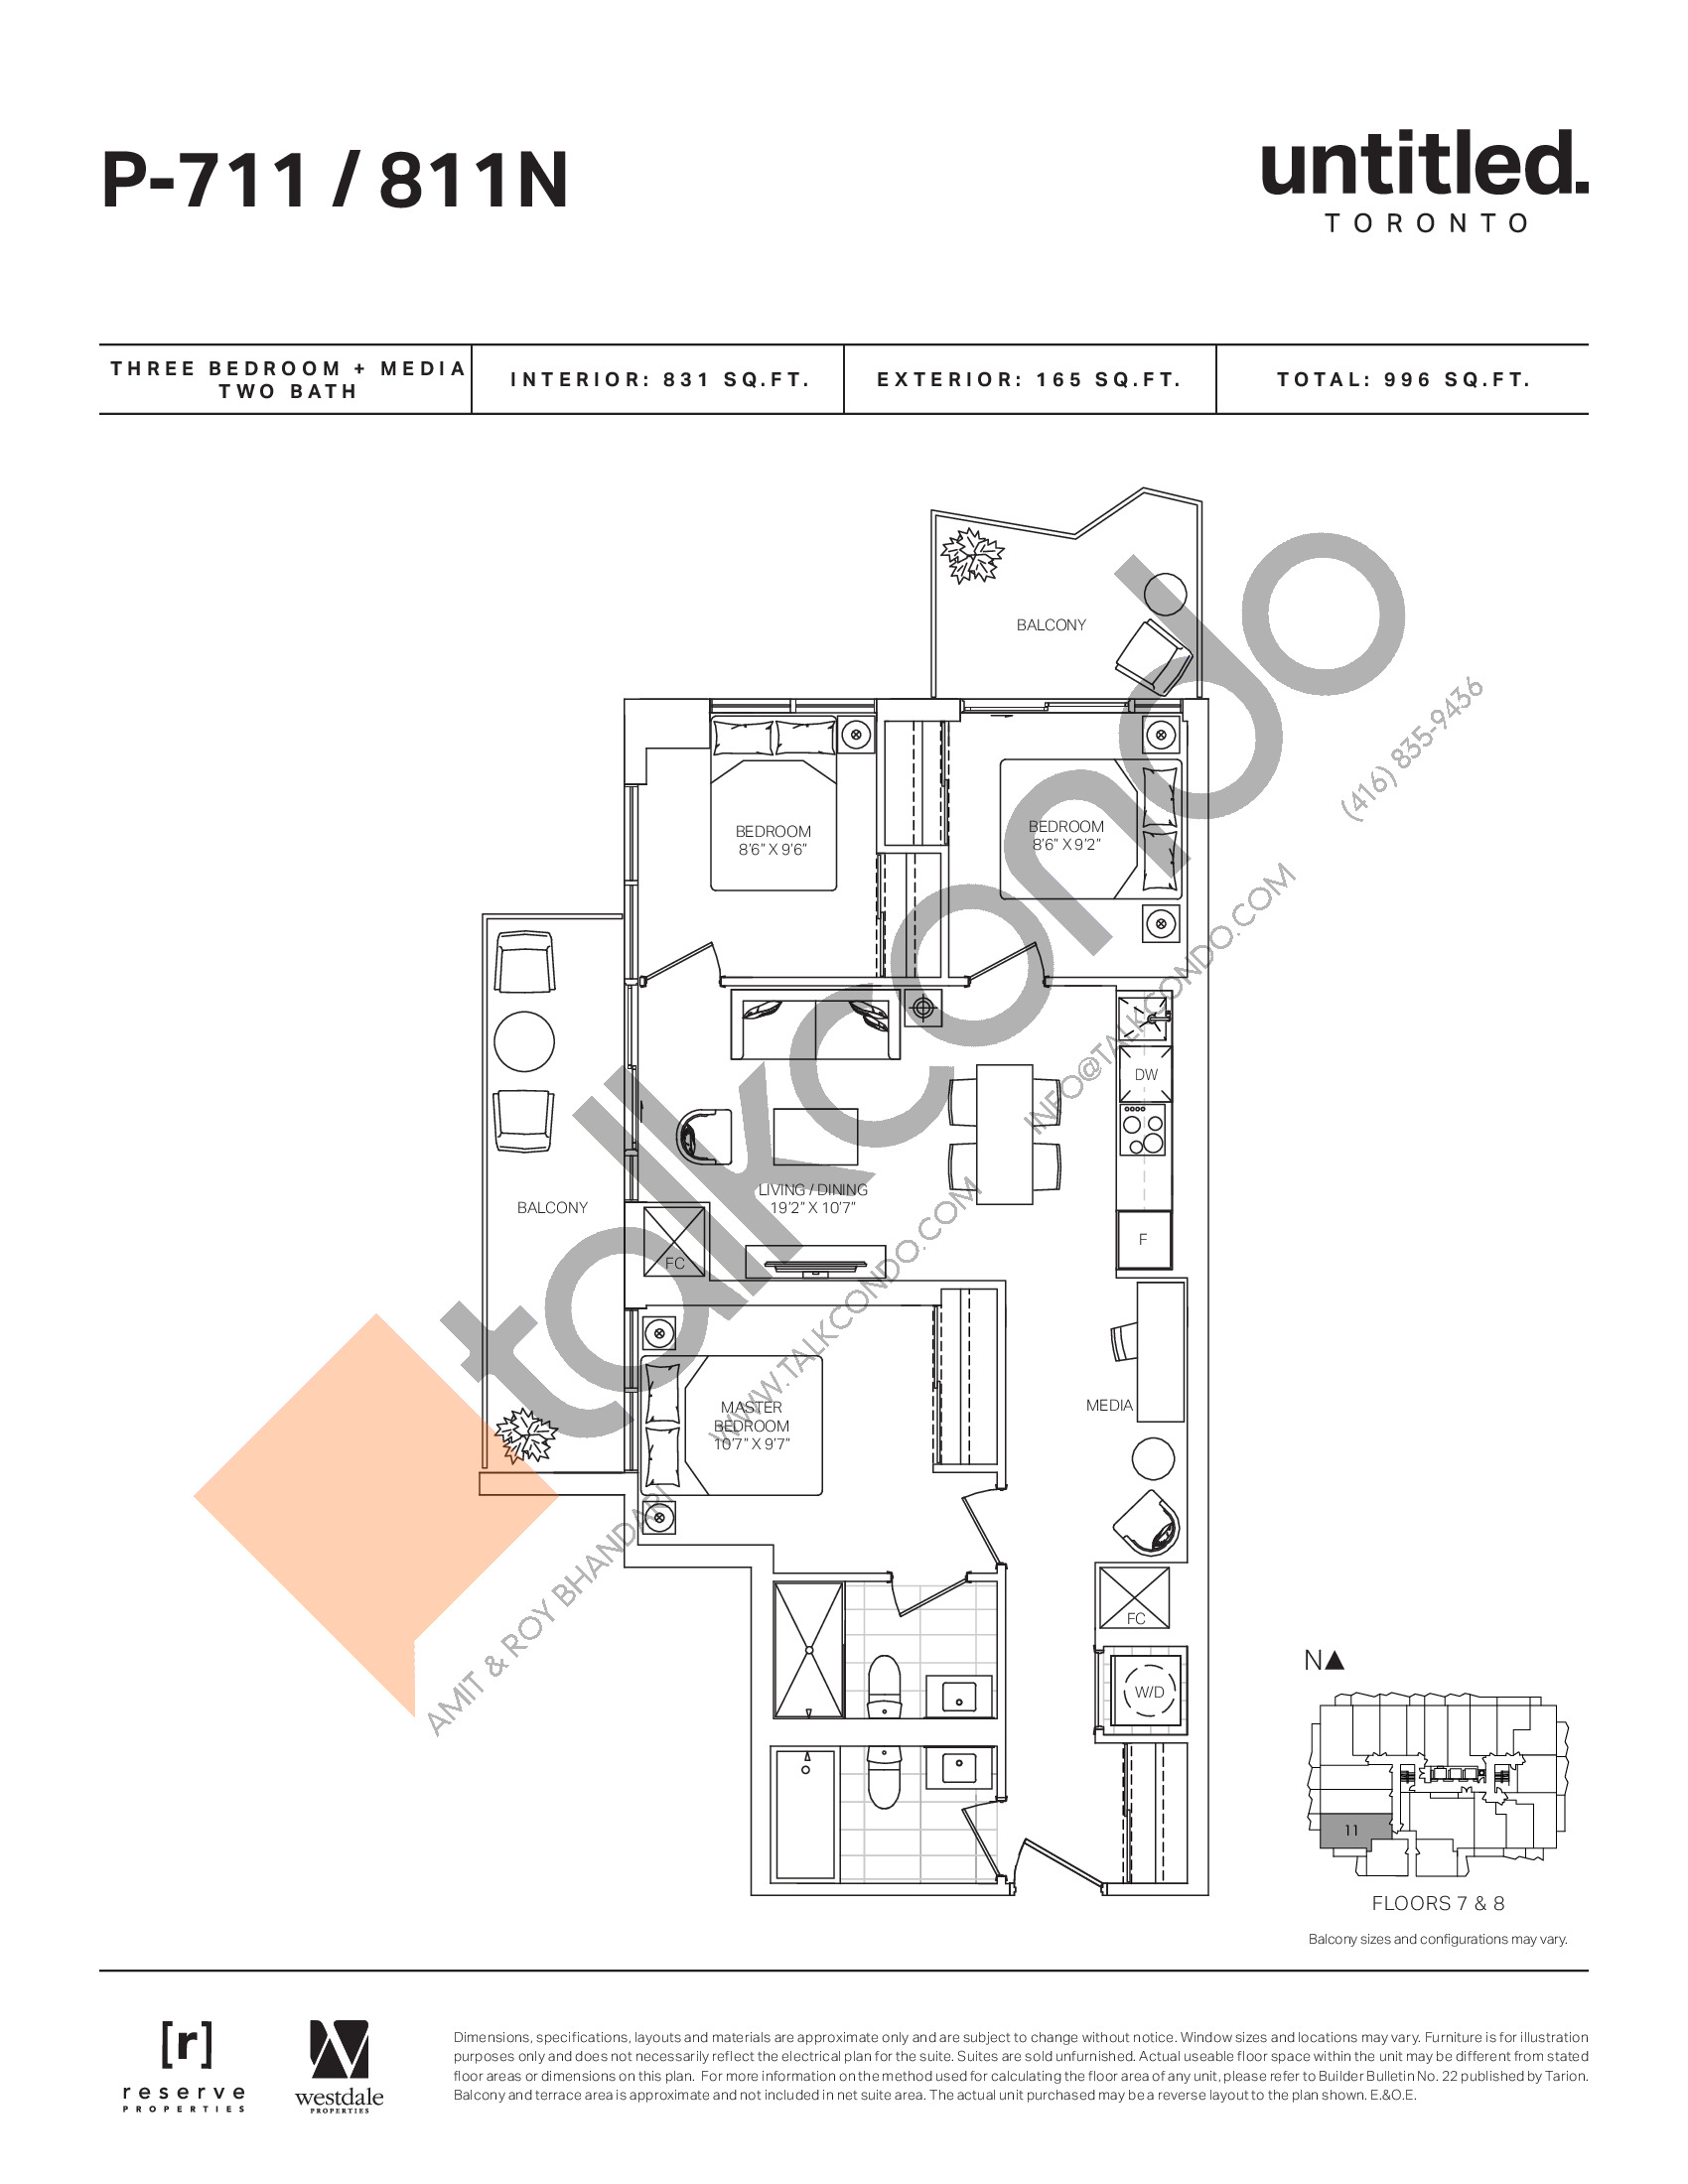 P-711/811N Floor Plan at Untitled North Tower Condos - 831 sq.ft